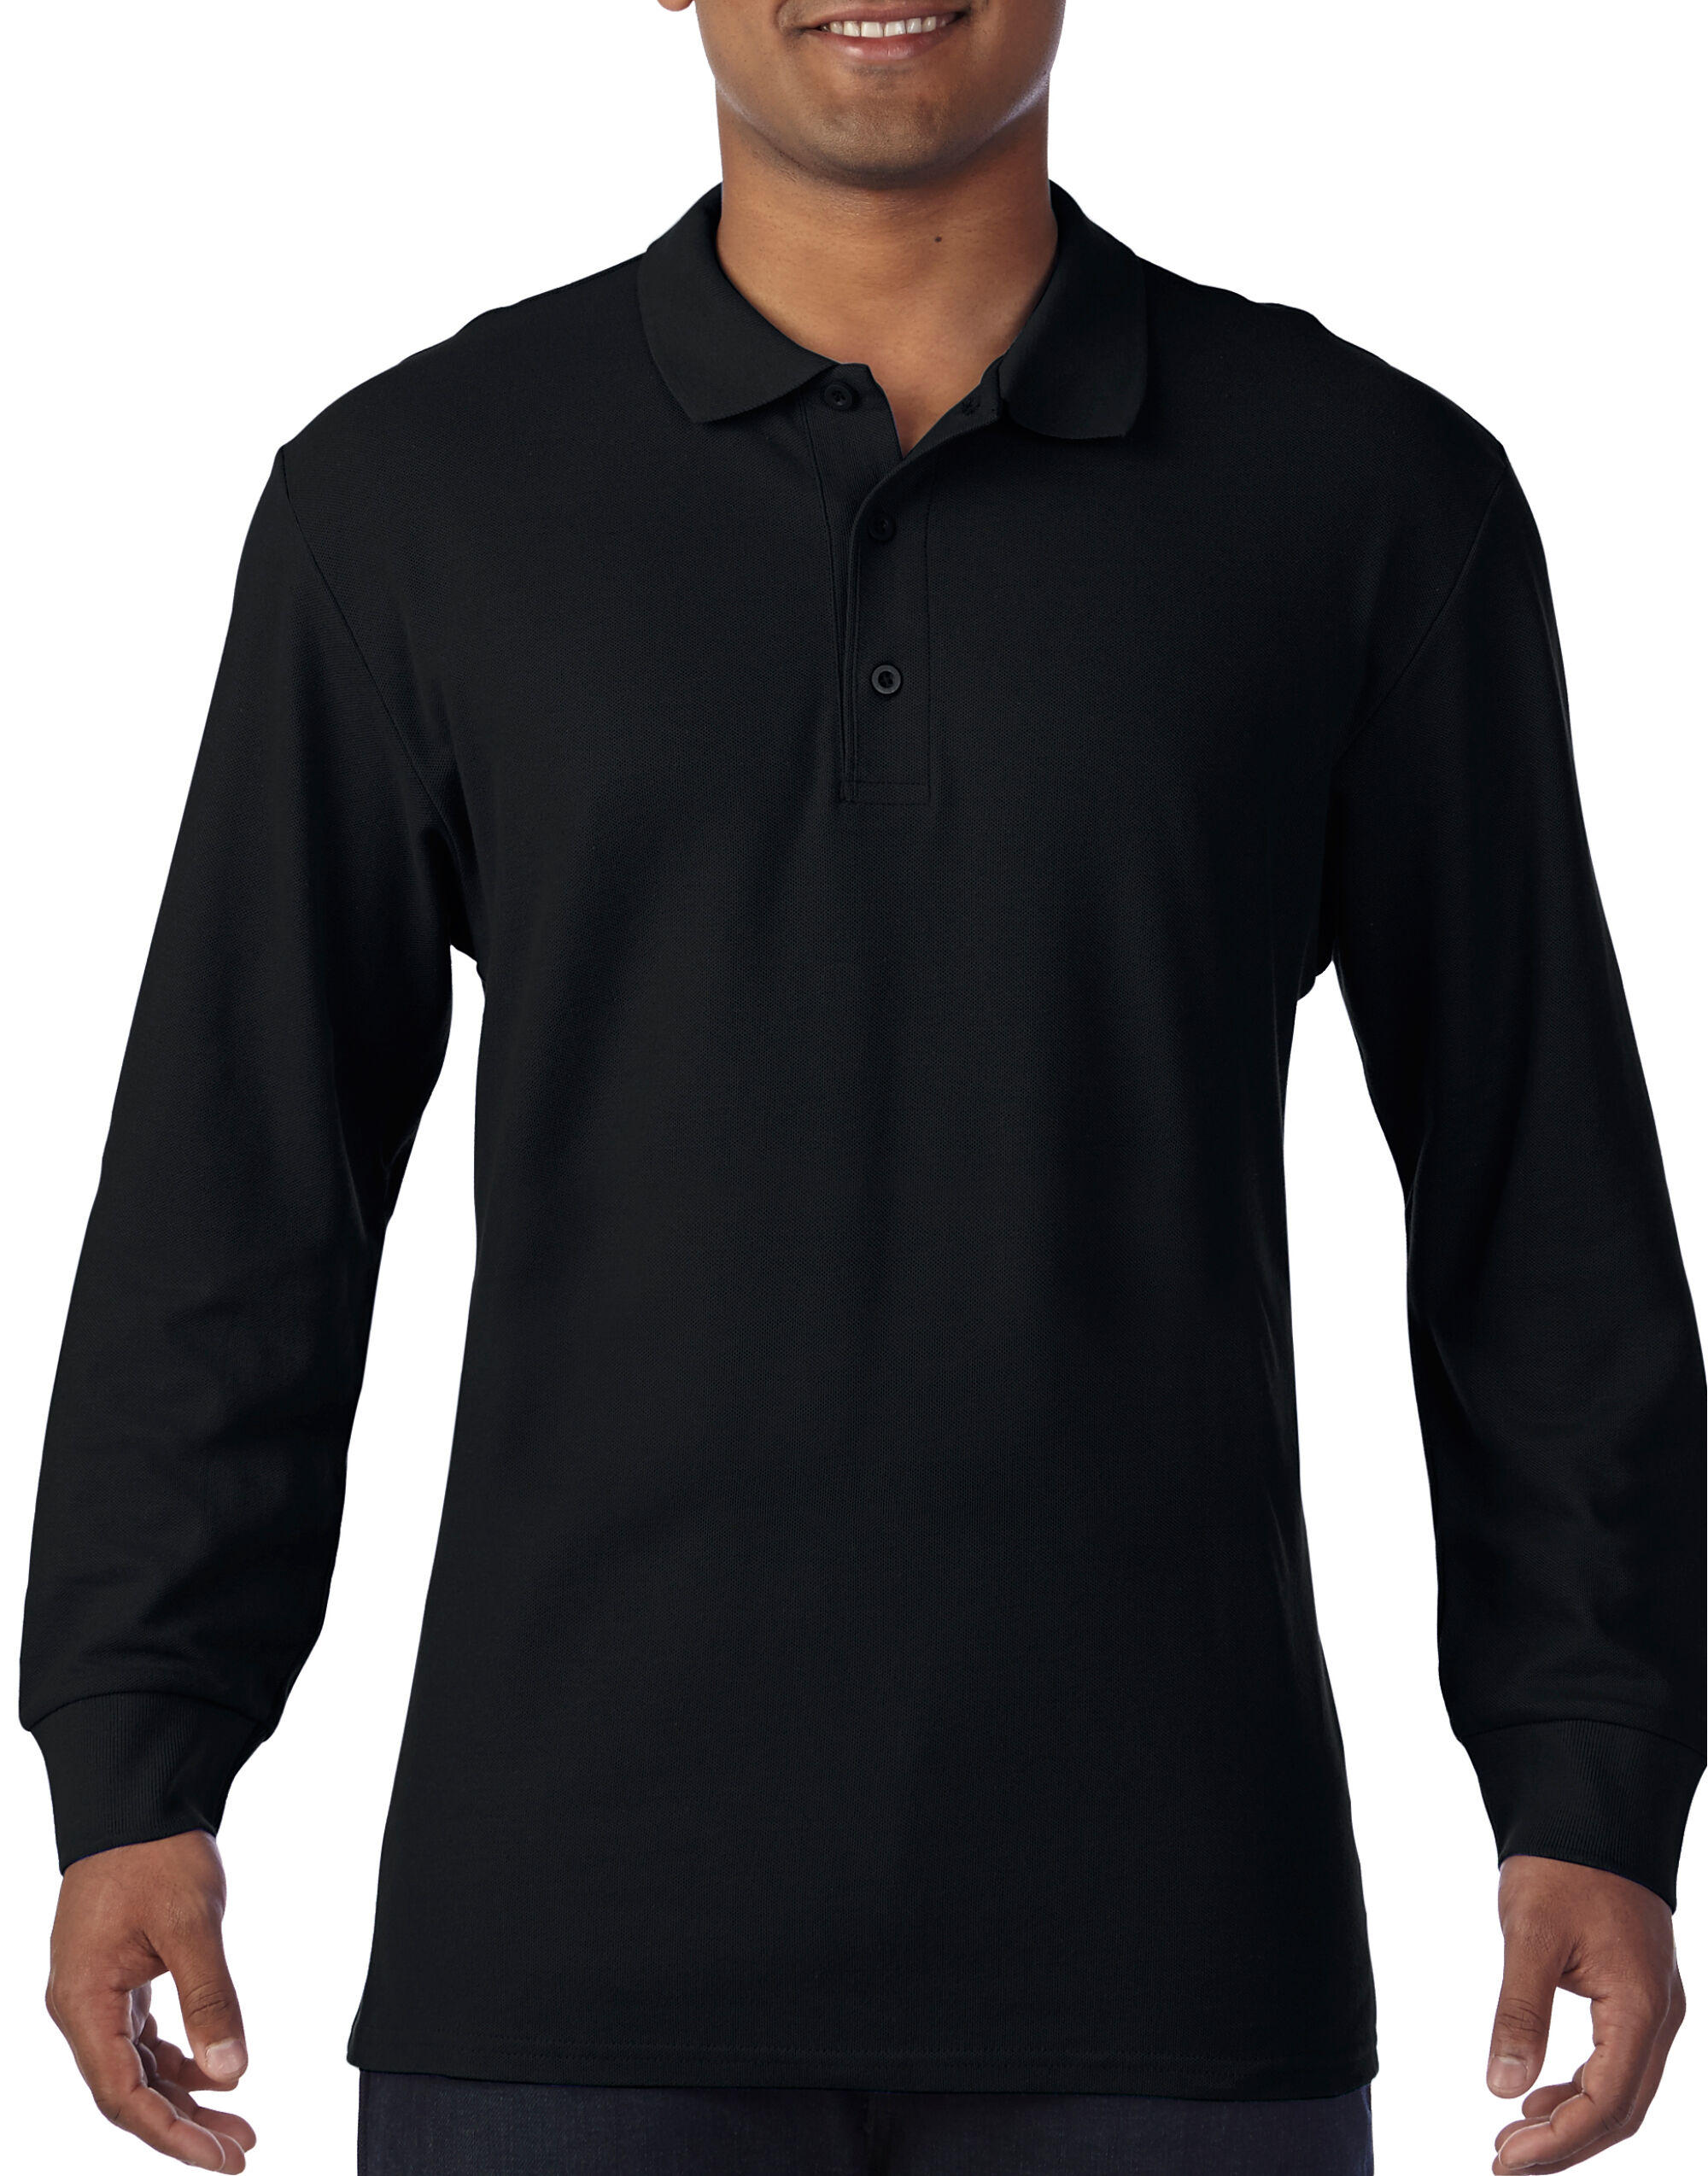 Gildan Premium Cotton L/sleeve Polo